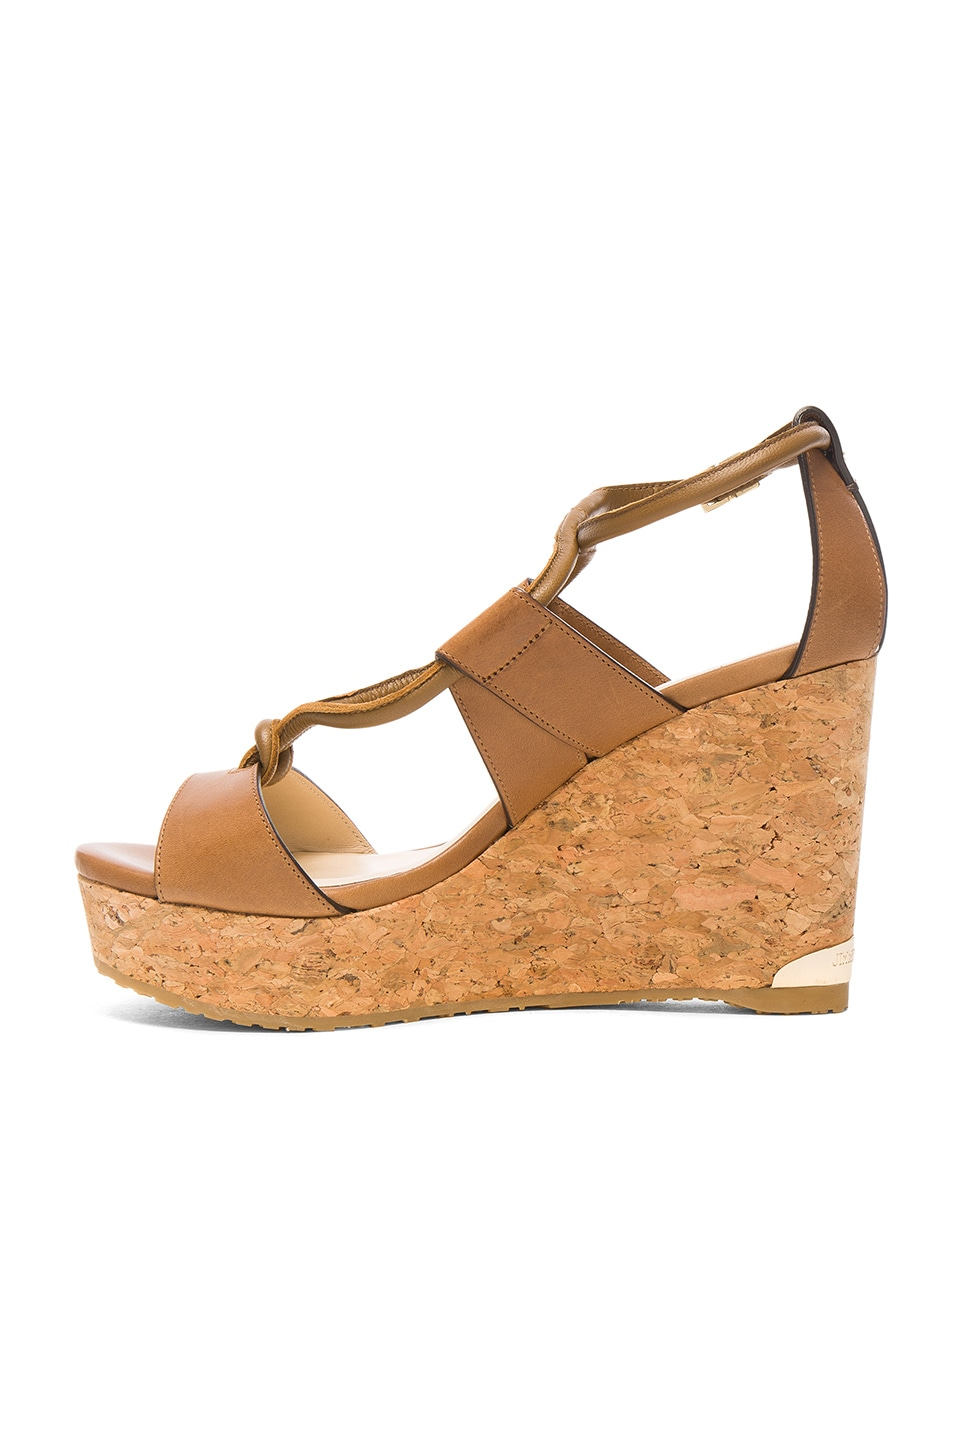 Image 5 of Jimmy Choo Leather Nelson Wedges in Tan